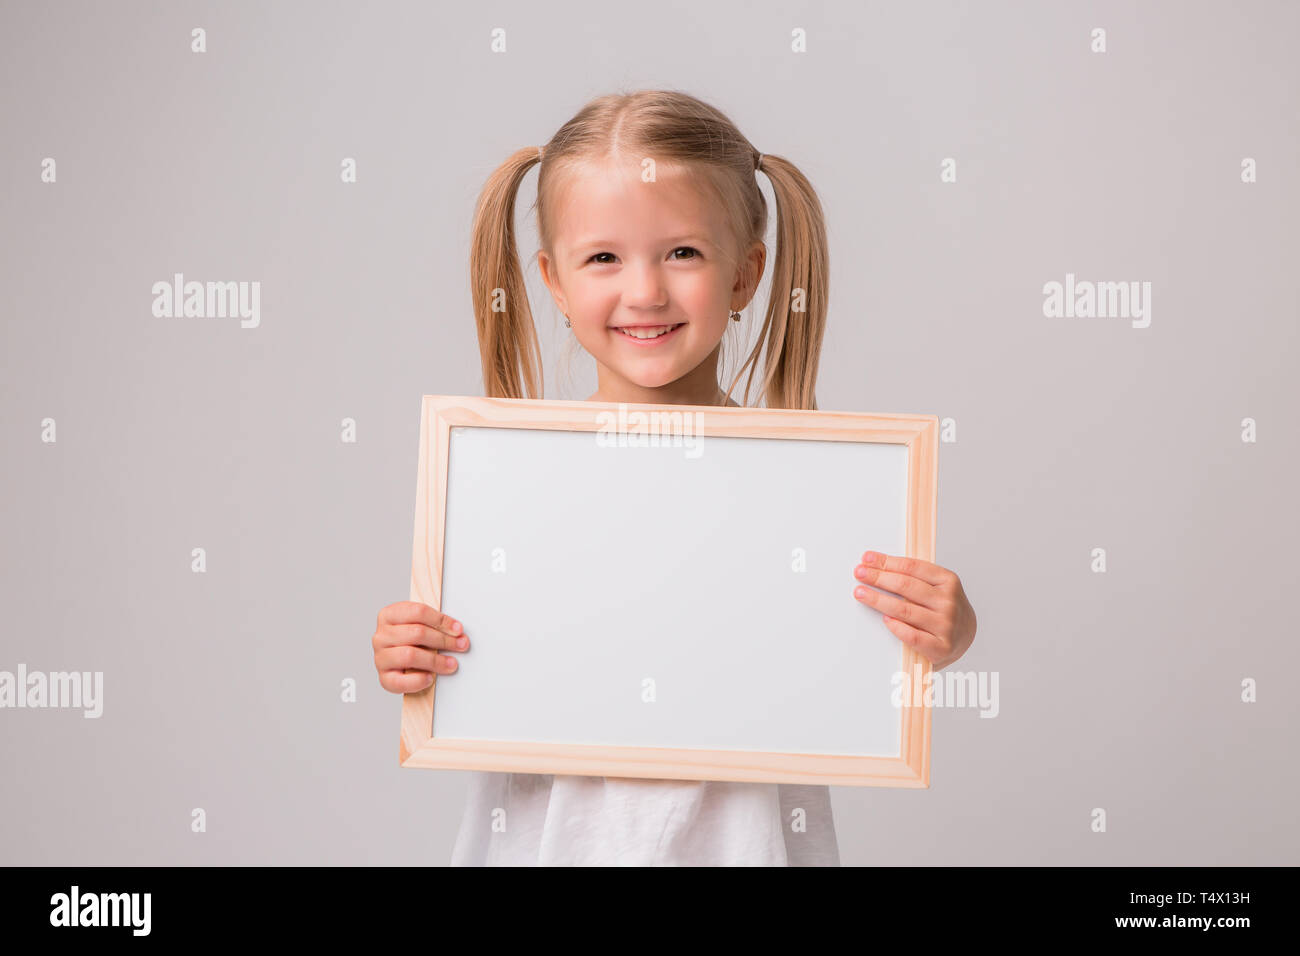 Portrait Of Baby Girl Holding White Drawing Board On White